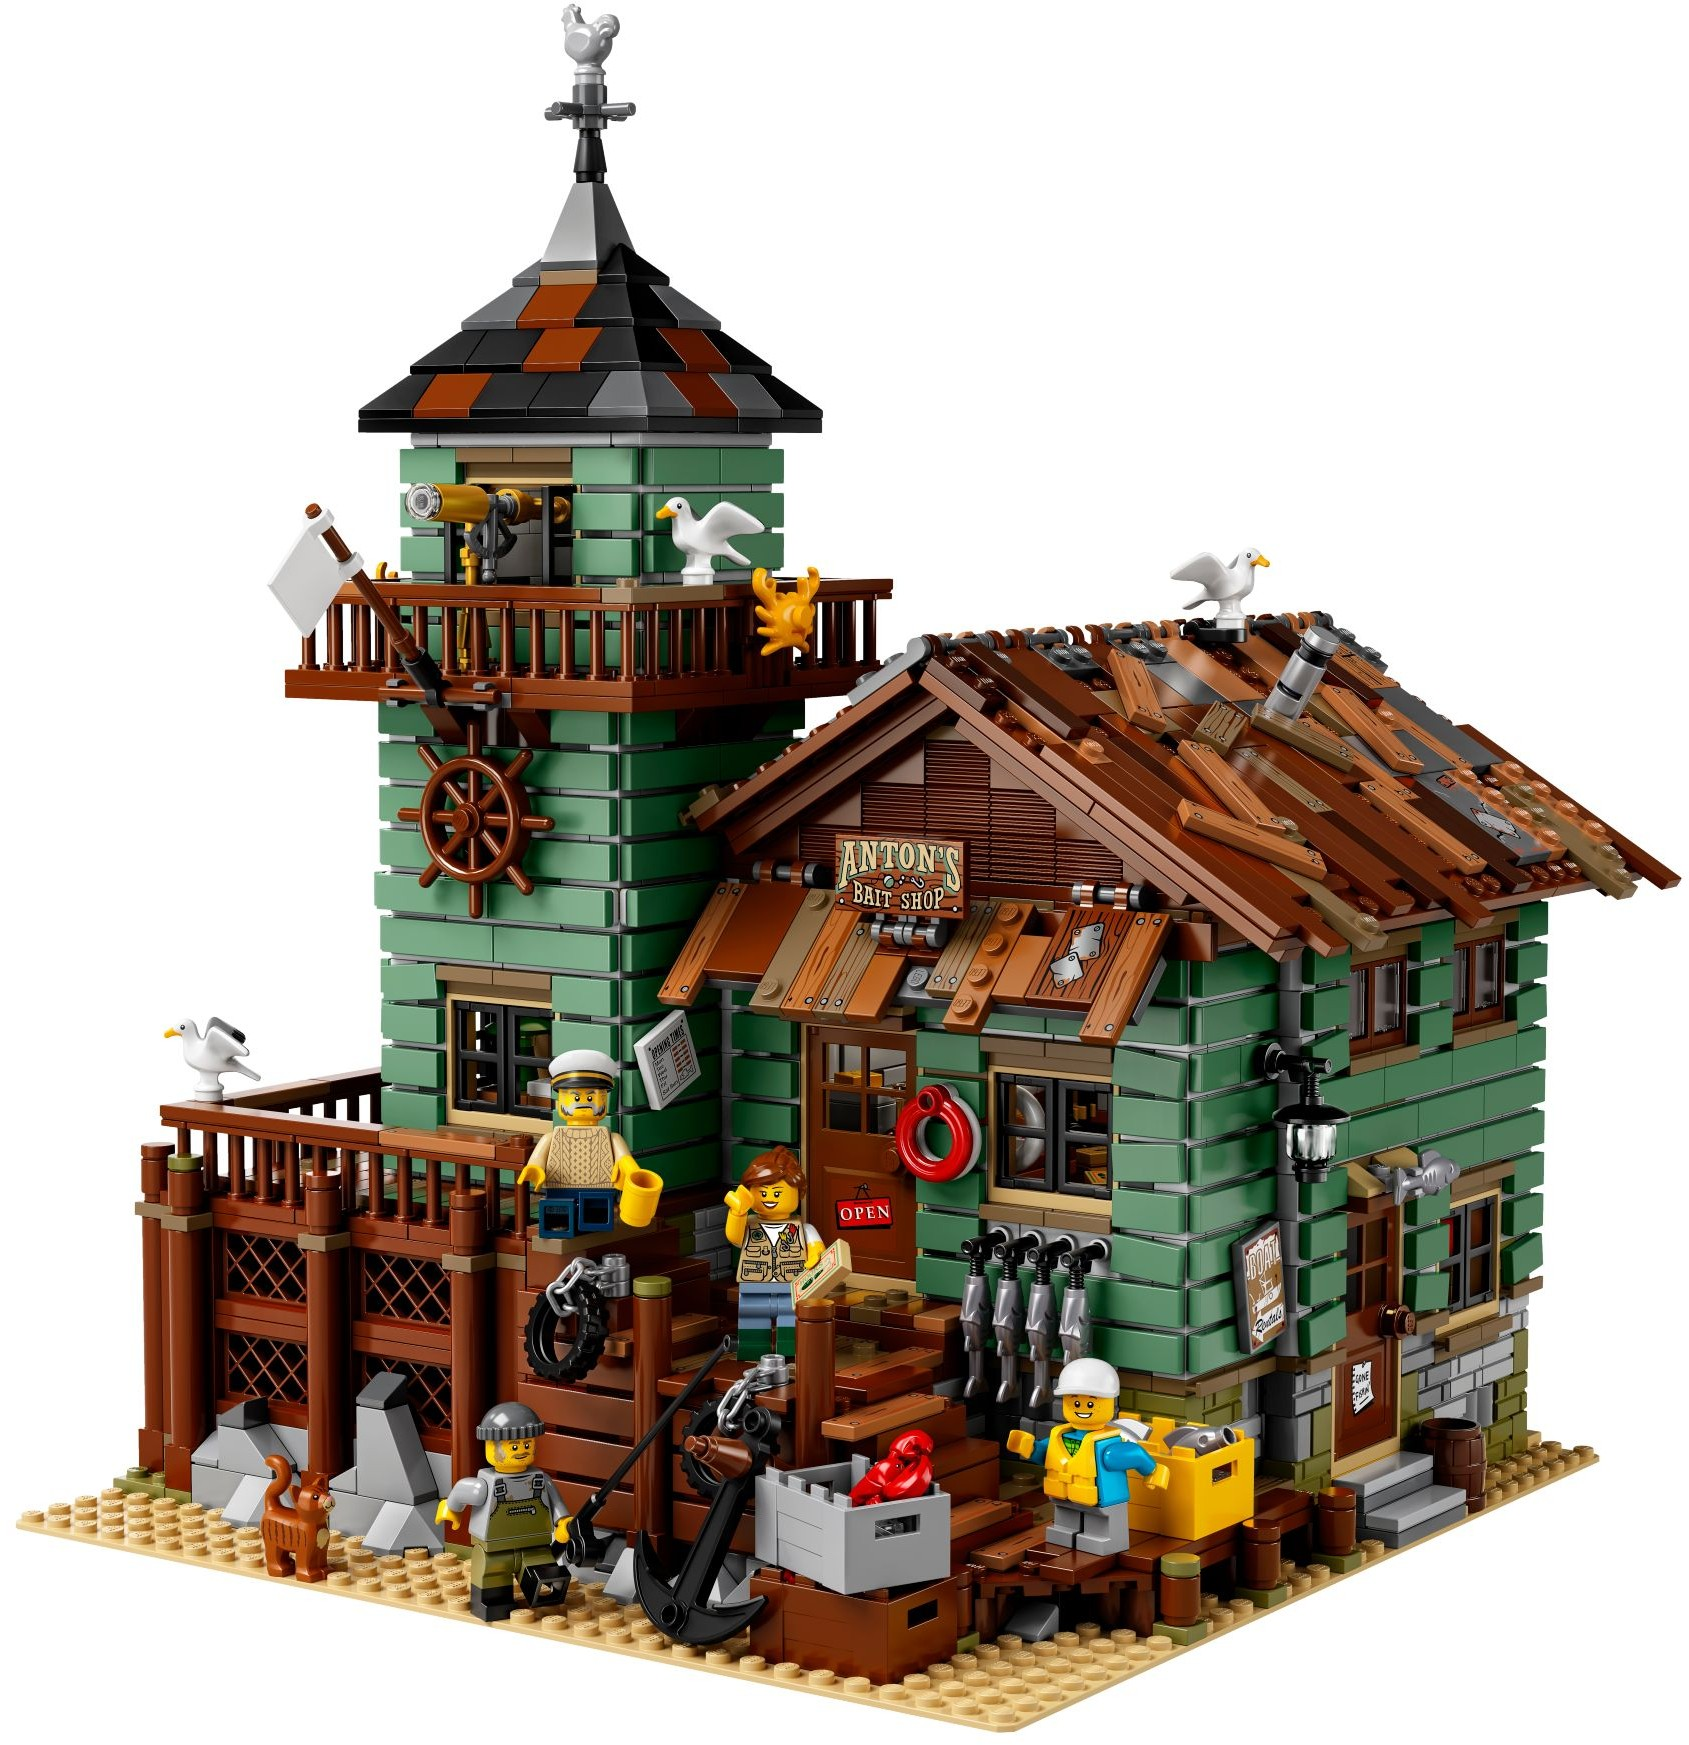 LEGO Ideas Old Fishing Store $149.99